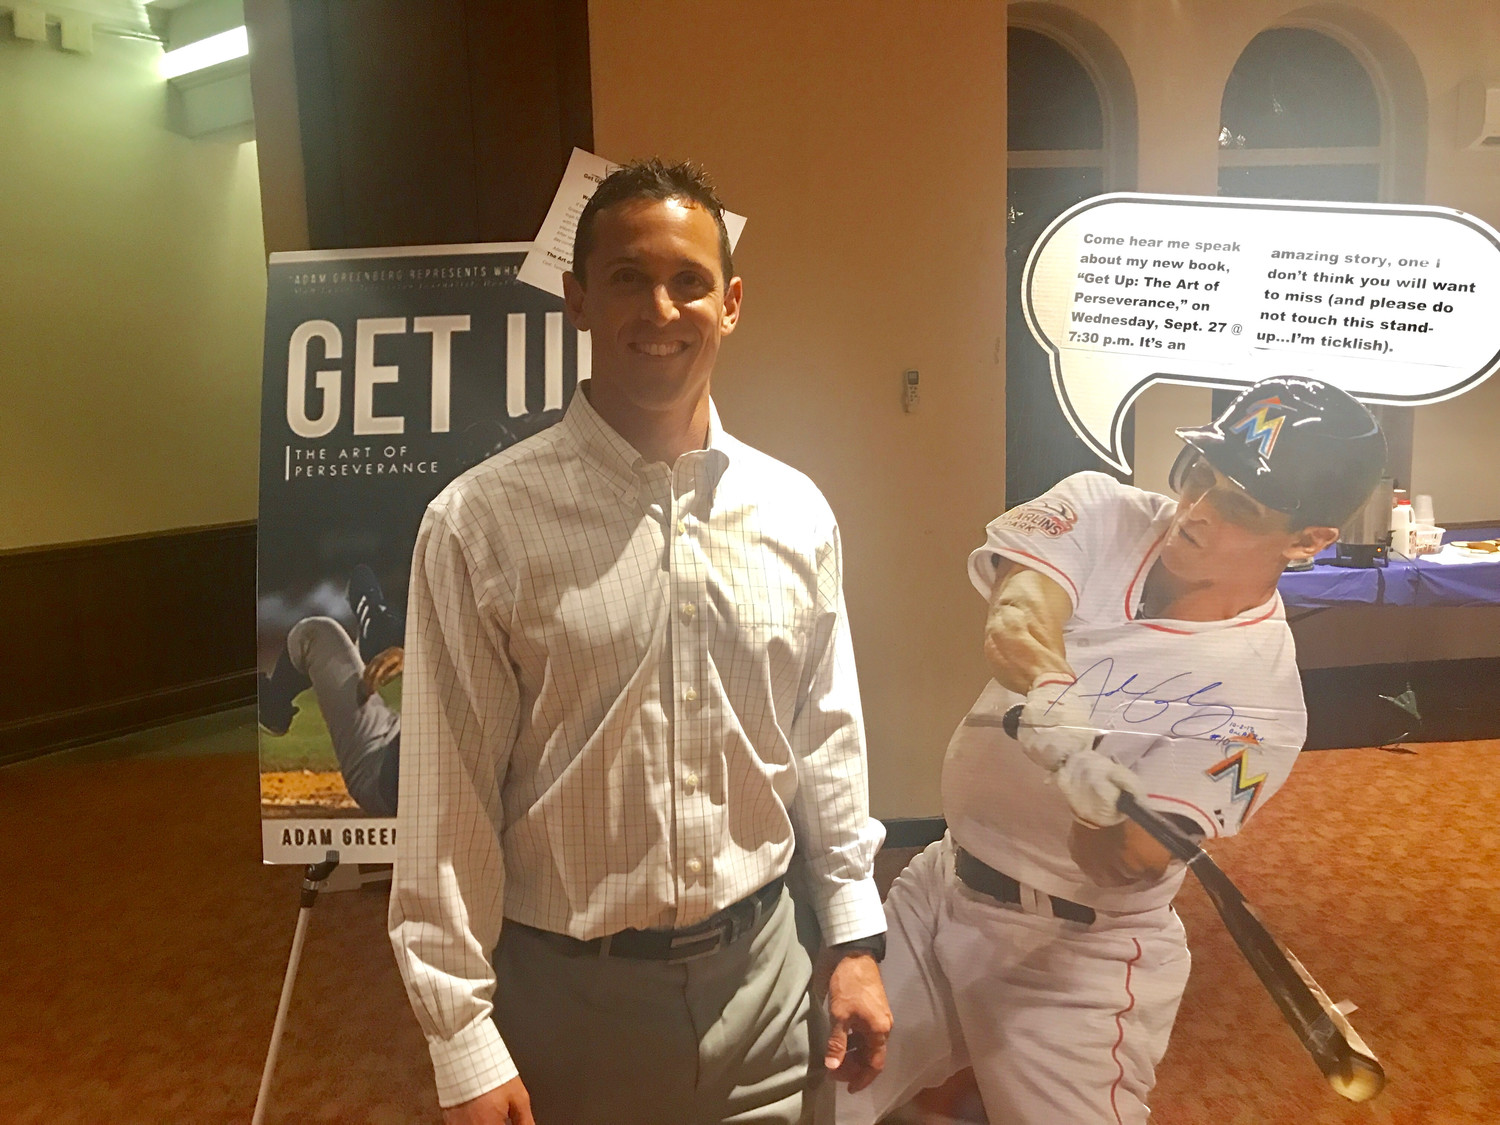 Adam Greenberg spoke about his short-lived major league baseball career and continuing to pursue your dreams at Temple Israel of Lawrence on Sept. 27.